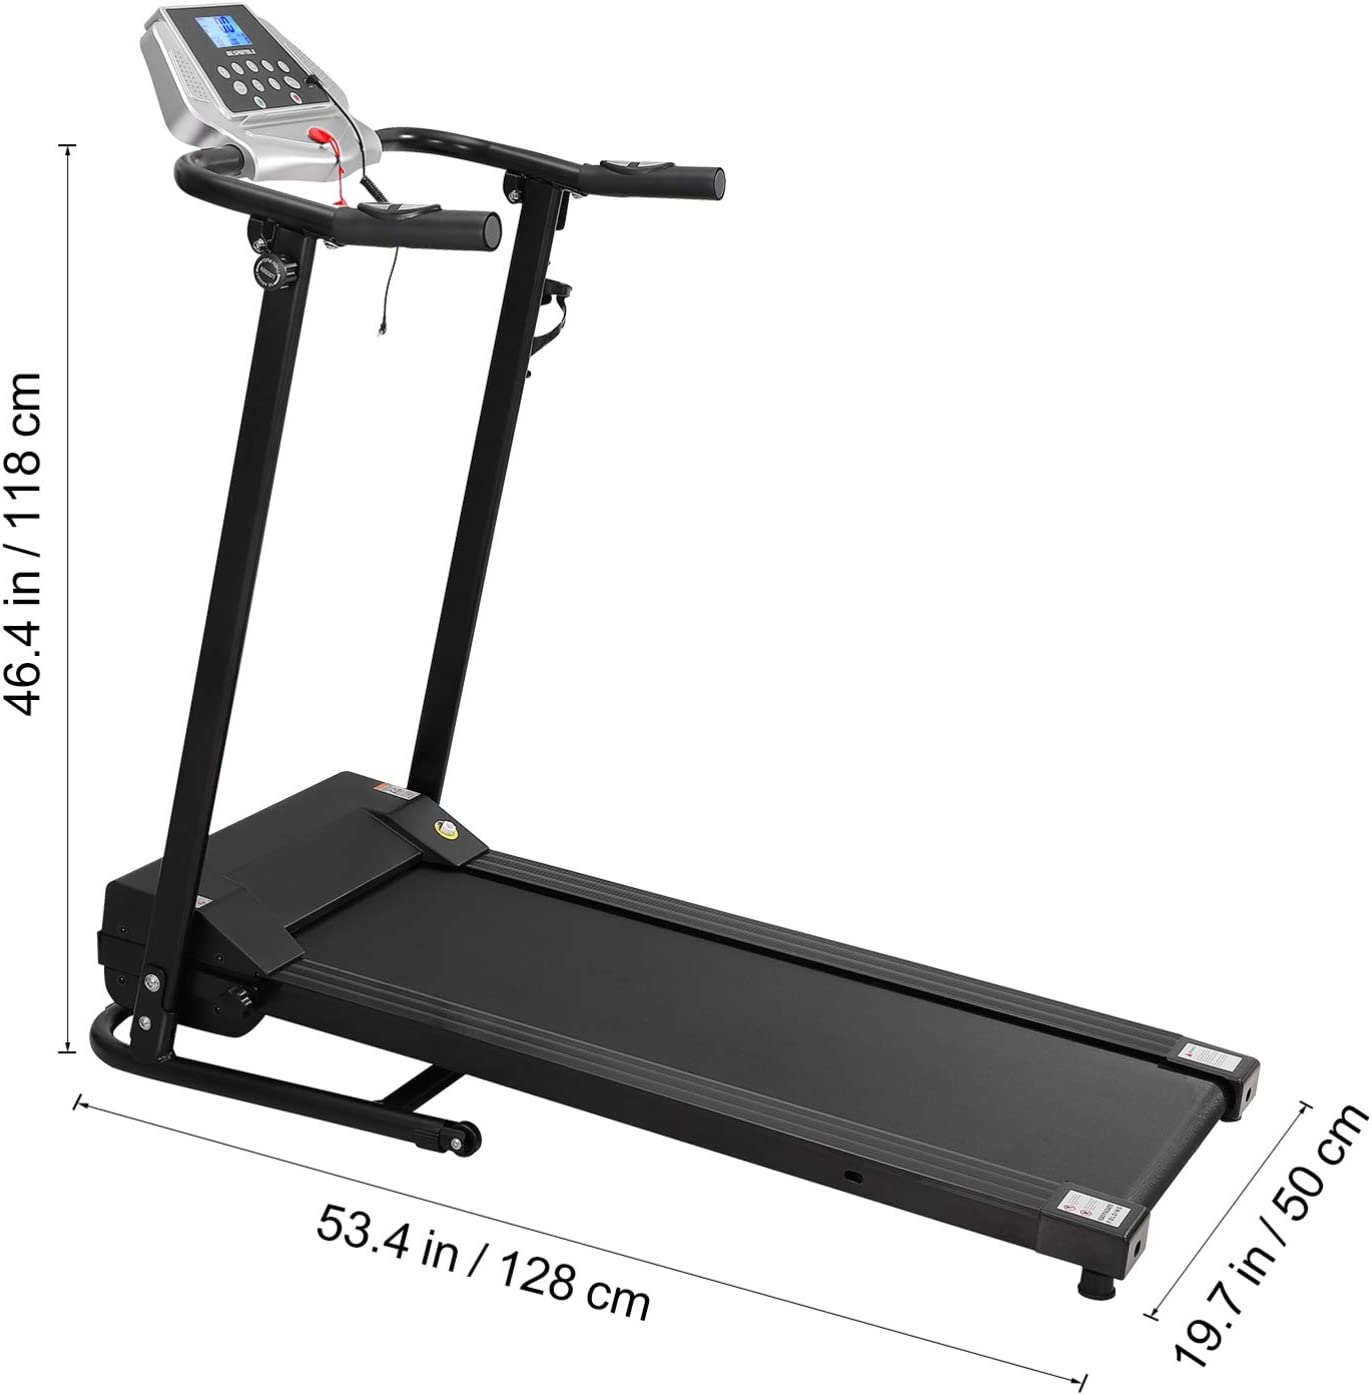 in Programs Household Exercise Equipment for Home Gym Office Indoor Jogging Shipping from UK/ï/¼/Œ UK PLUG Wakauto Foldable Treadmill Electric Motorised Running Machine with LCD Screen 12 Built